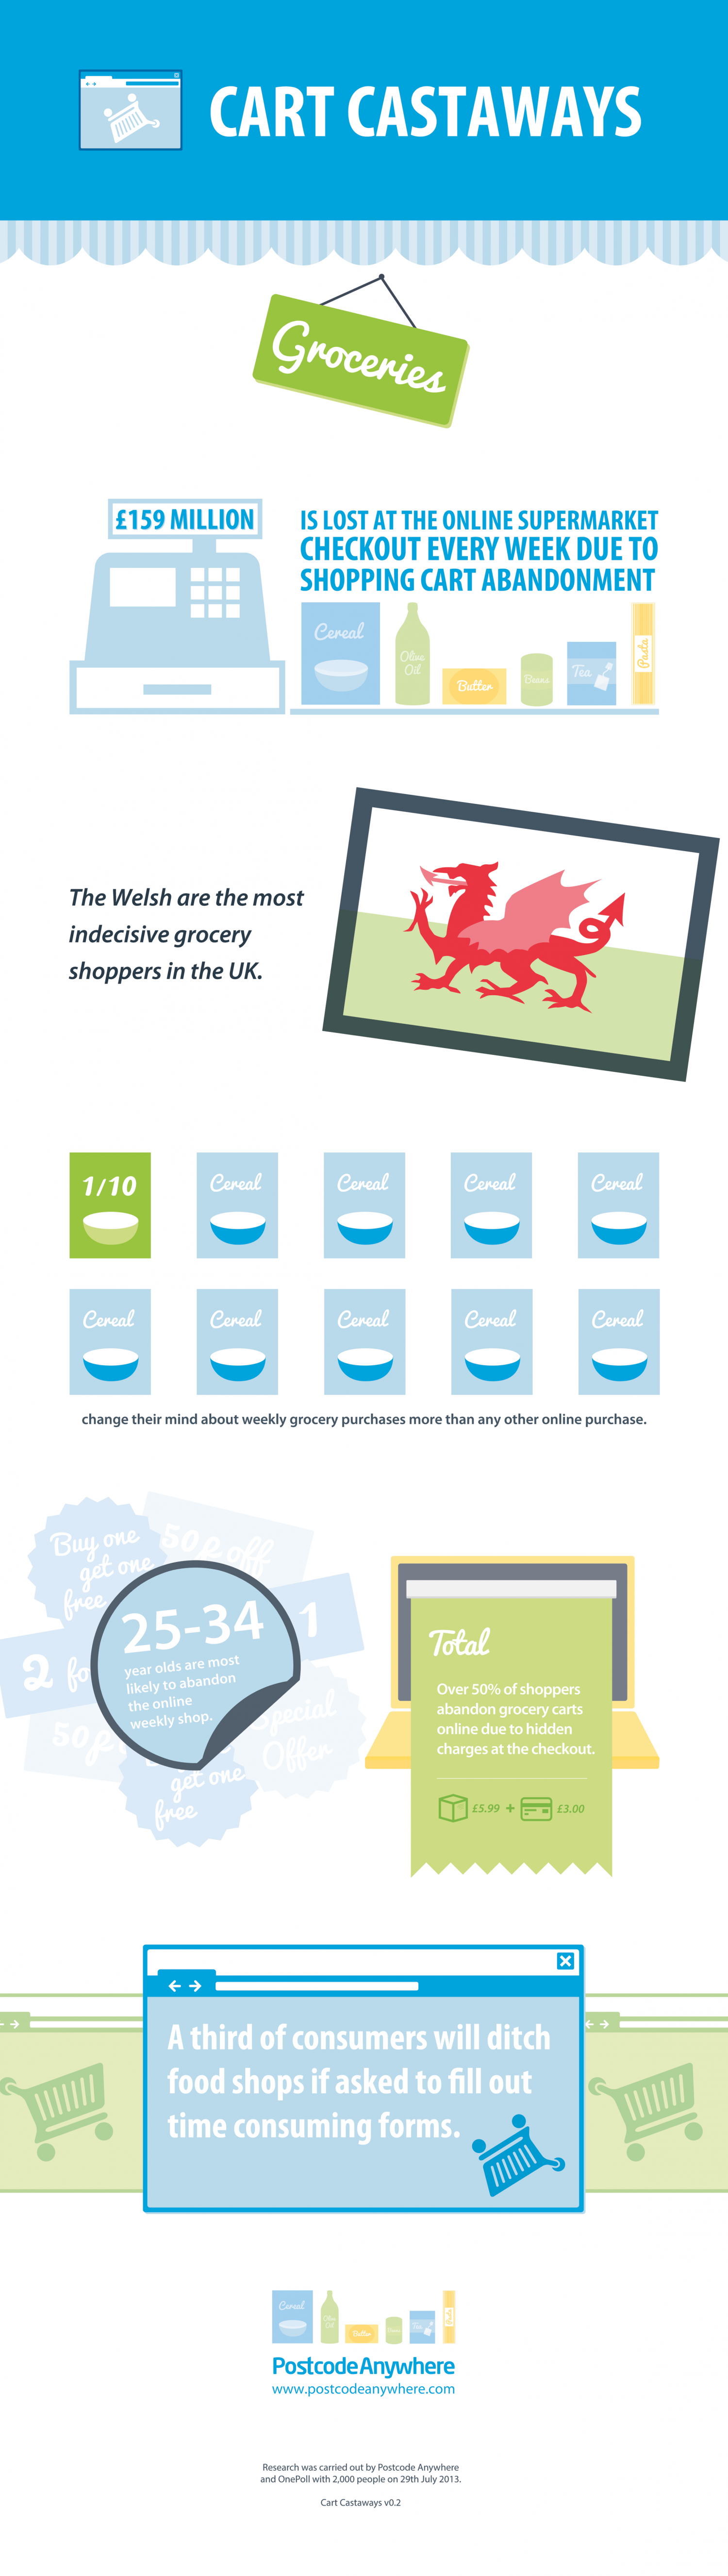 Cart Castaways: Groceries  Infographic